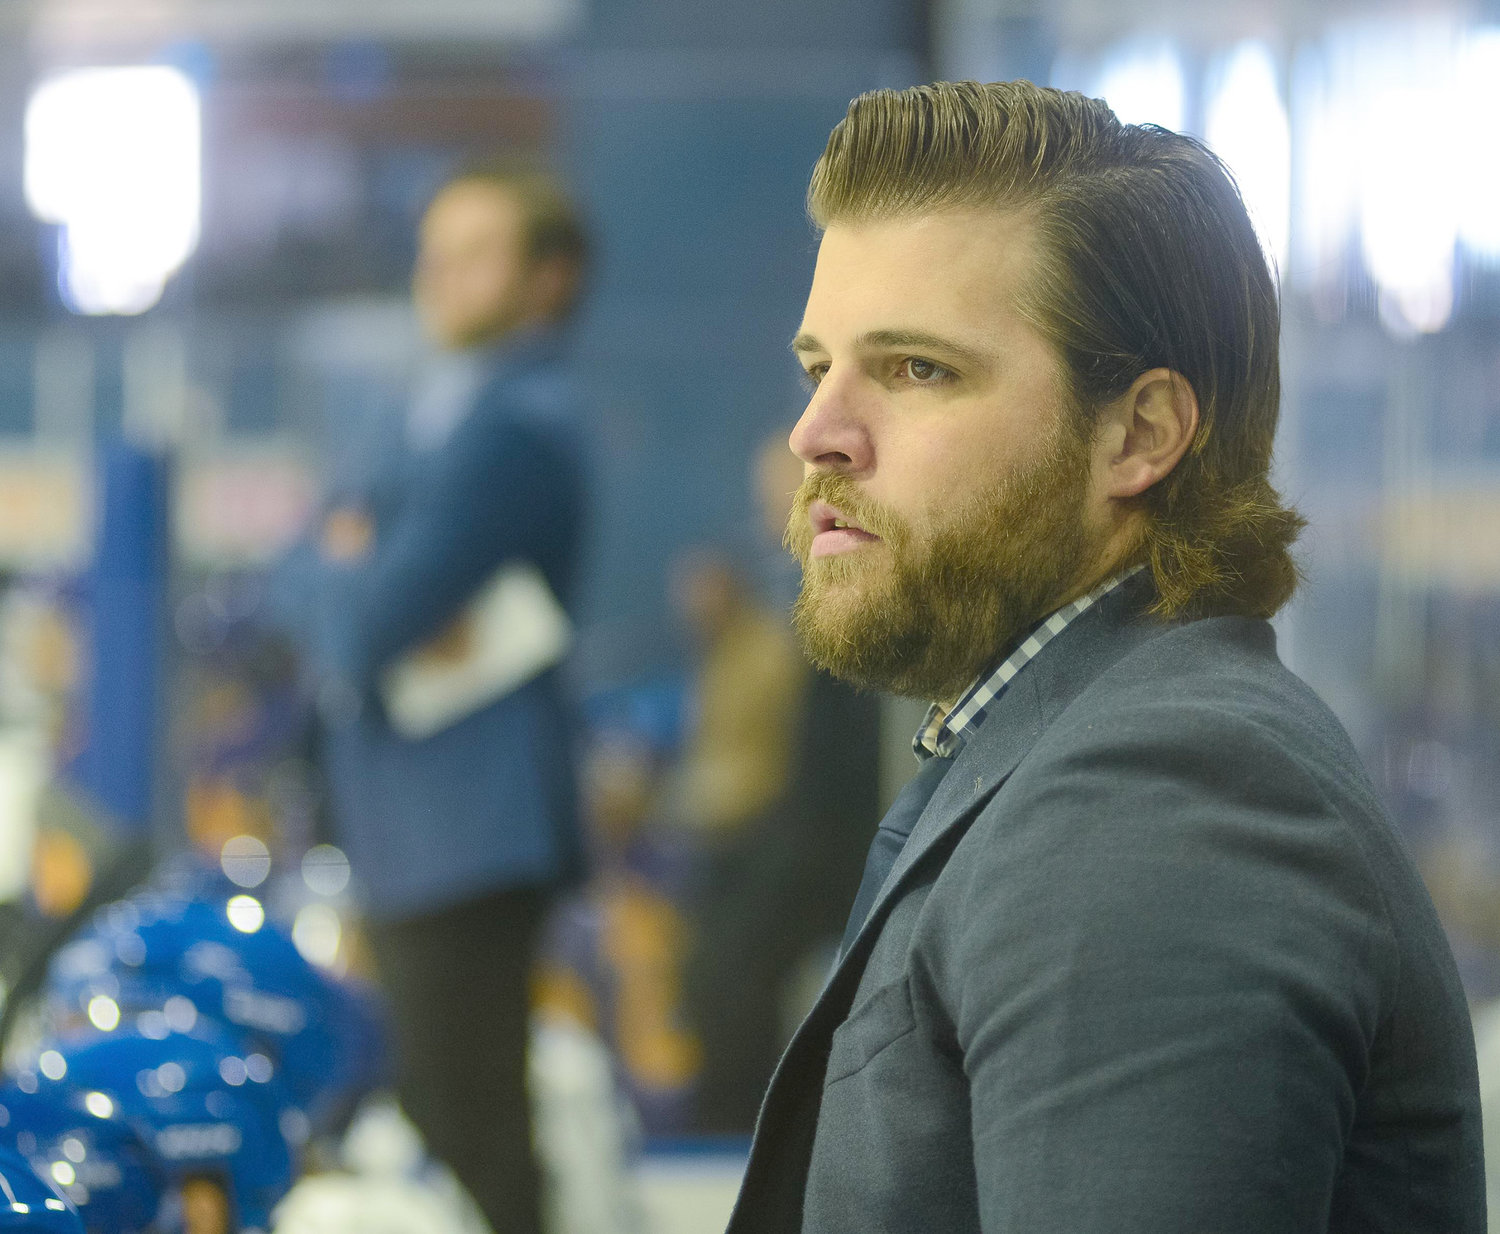 NOW COACHING — Nick Palmieri is an assistant coach for the Utica Jr Comets' National Collegiate Development Conference team and the premier team. Palmieri, who played for Clinton high school before heading to prep school, brings NHL experience to the bench, where he's helping young players take their game to the next level.